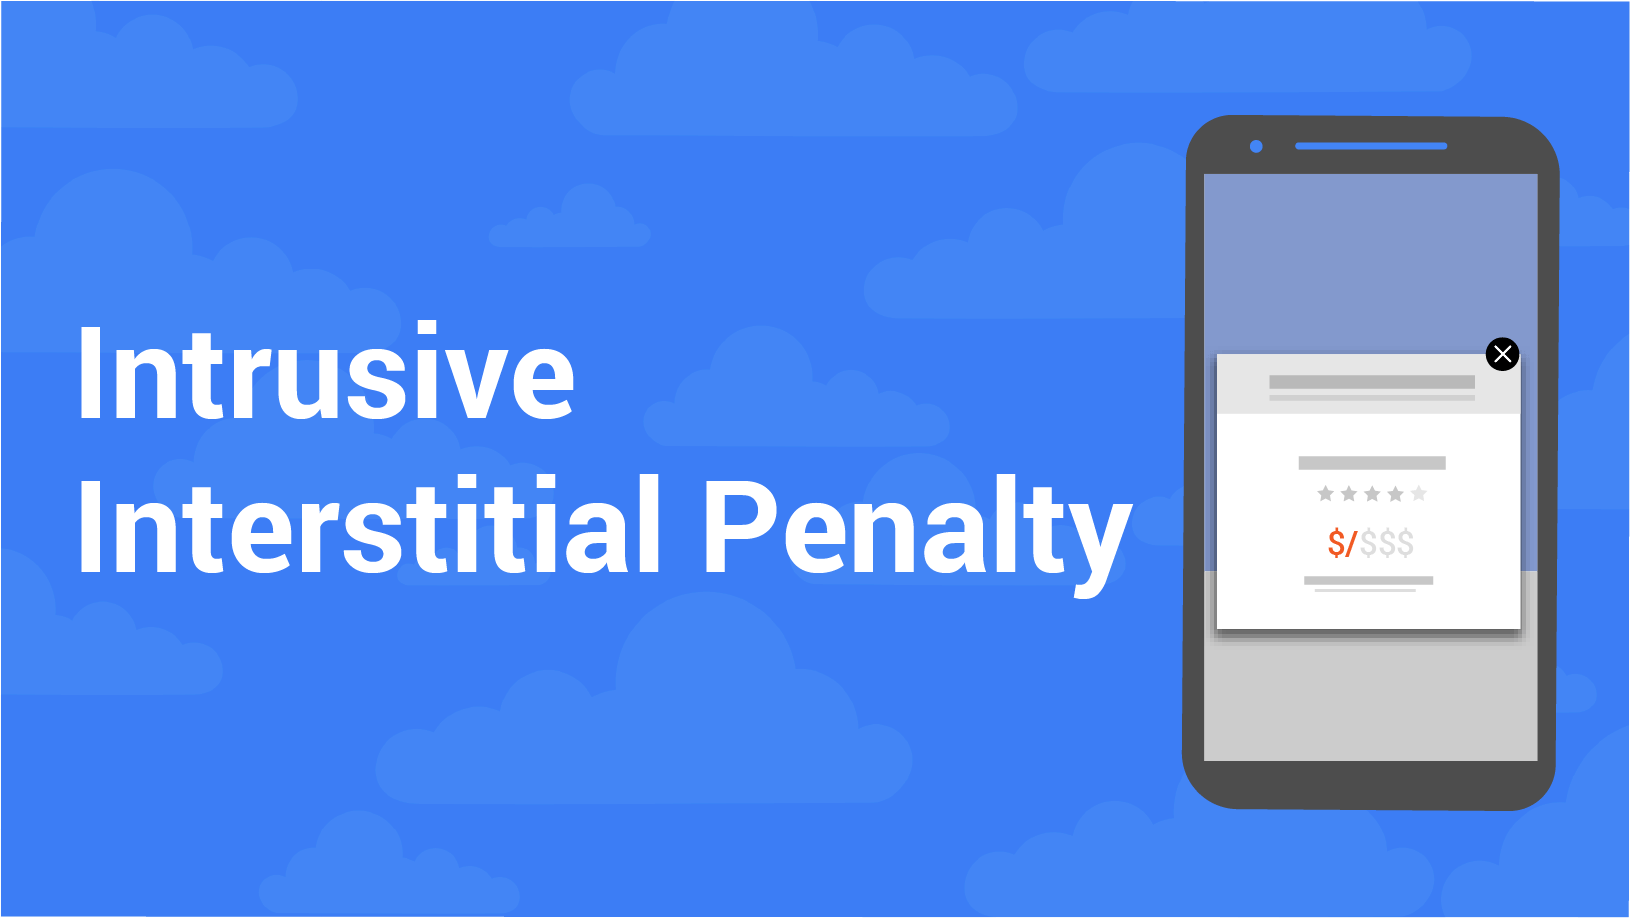 Google intrusive interstitial penalty update